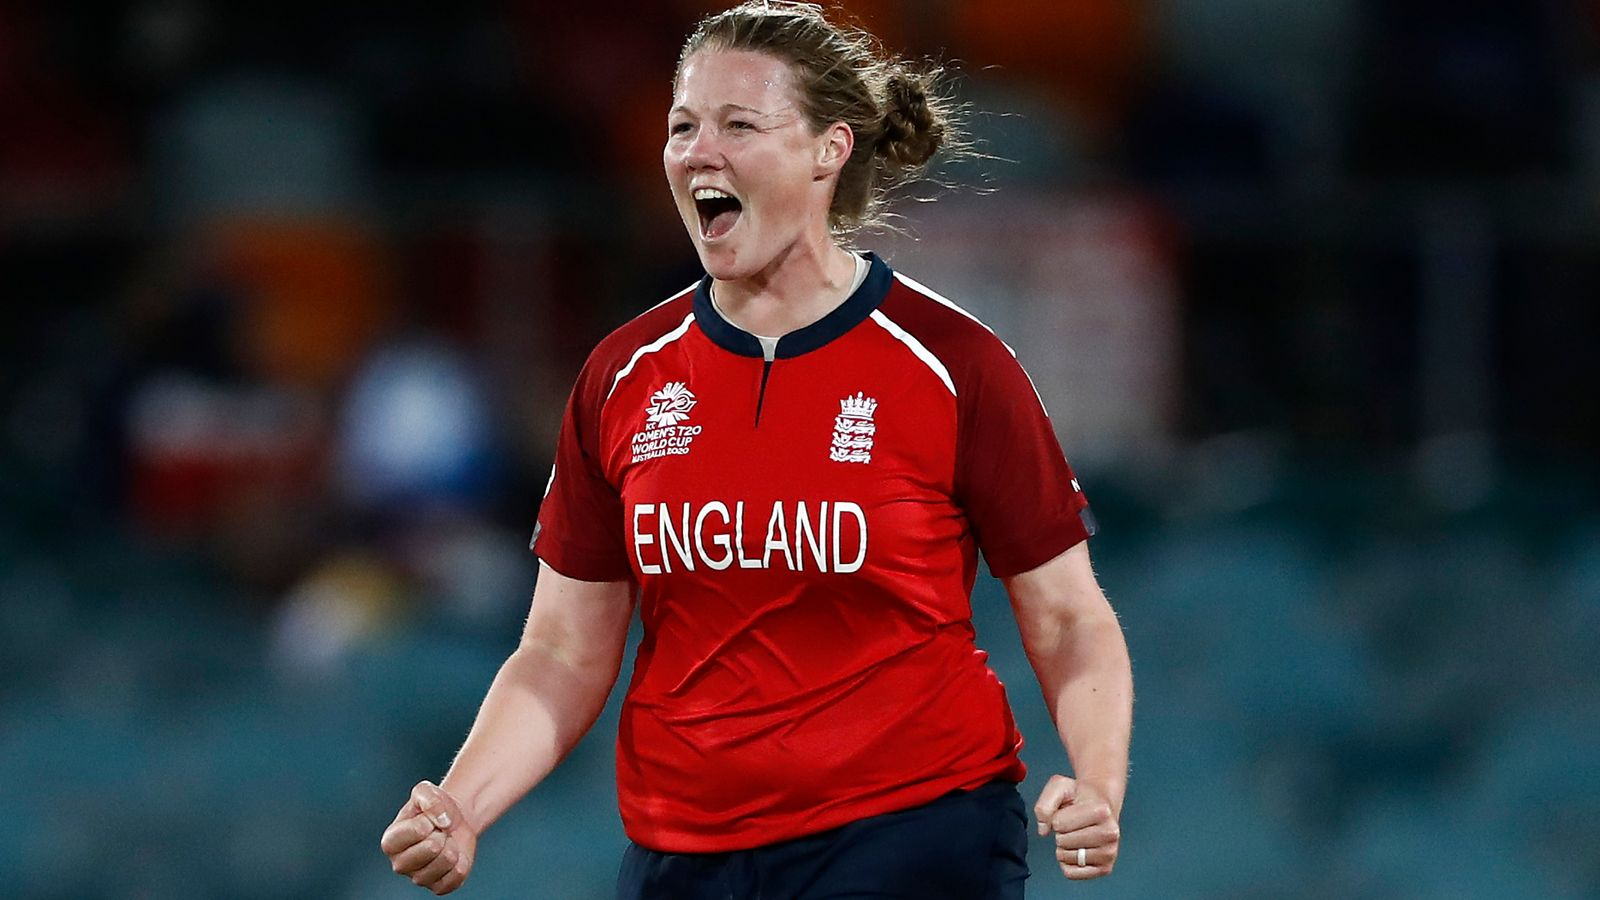 Anya Shrubsole excited by 'amazing' 2022 calendar as she prepares for her England return